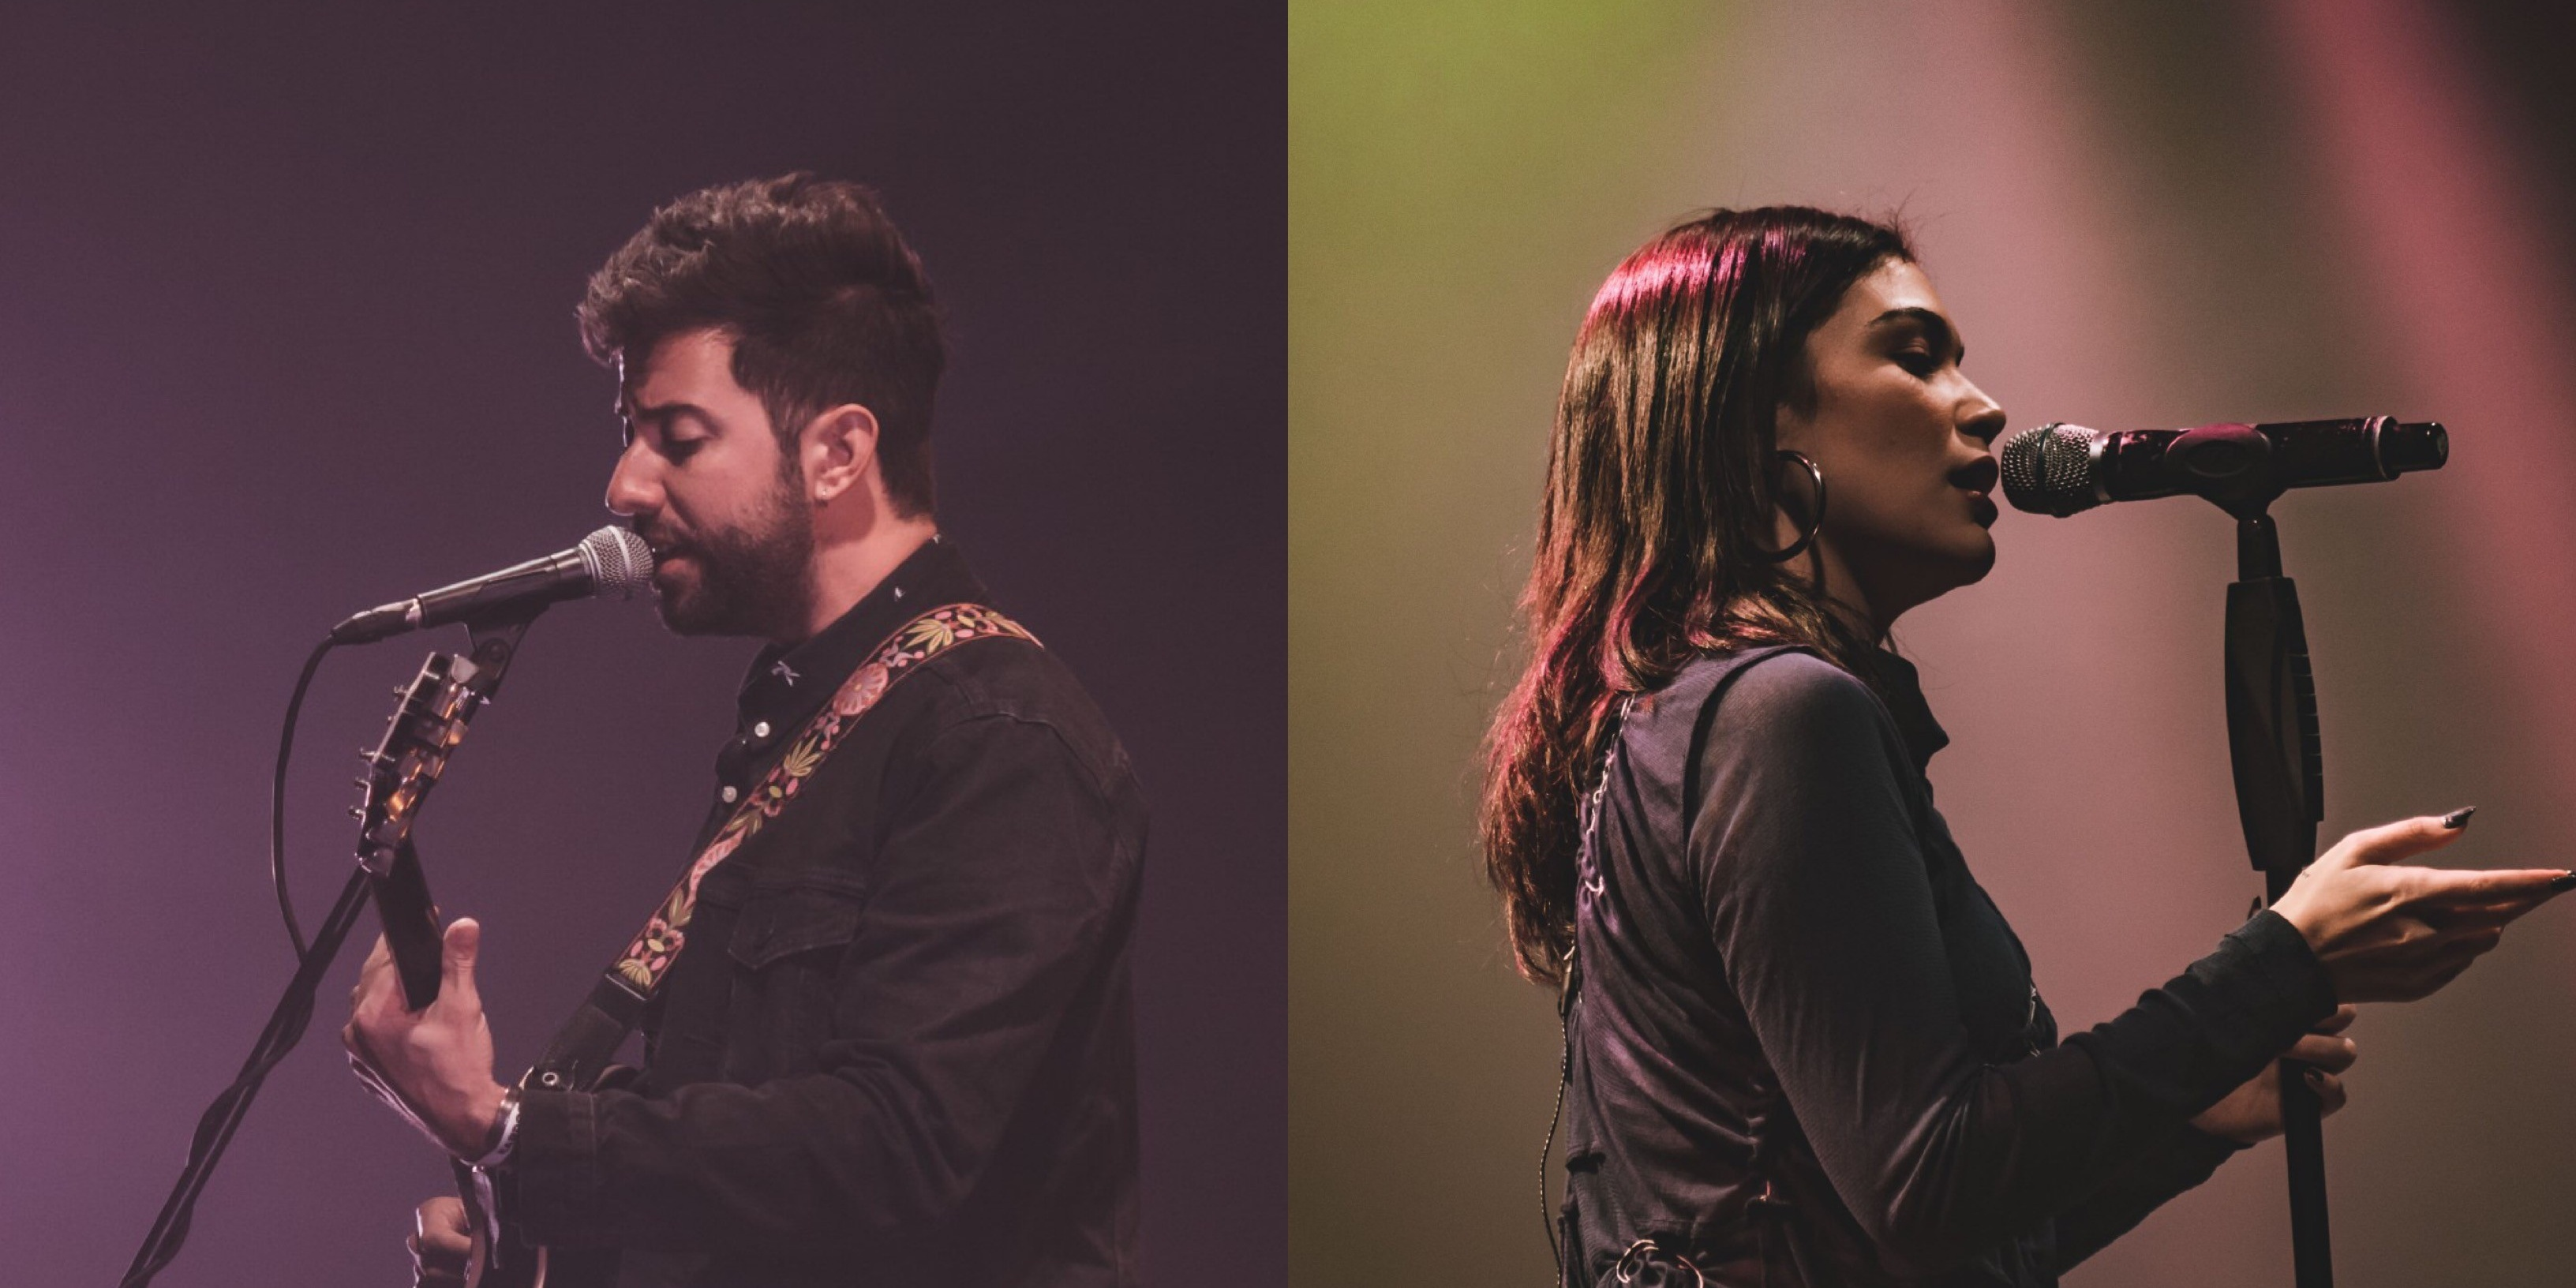 Jess Connelly and Bruno Major stun in Karpos Live Mix 3.2 performance – photo gallery